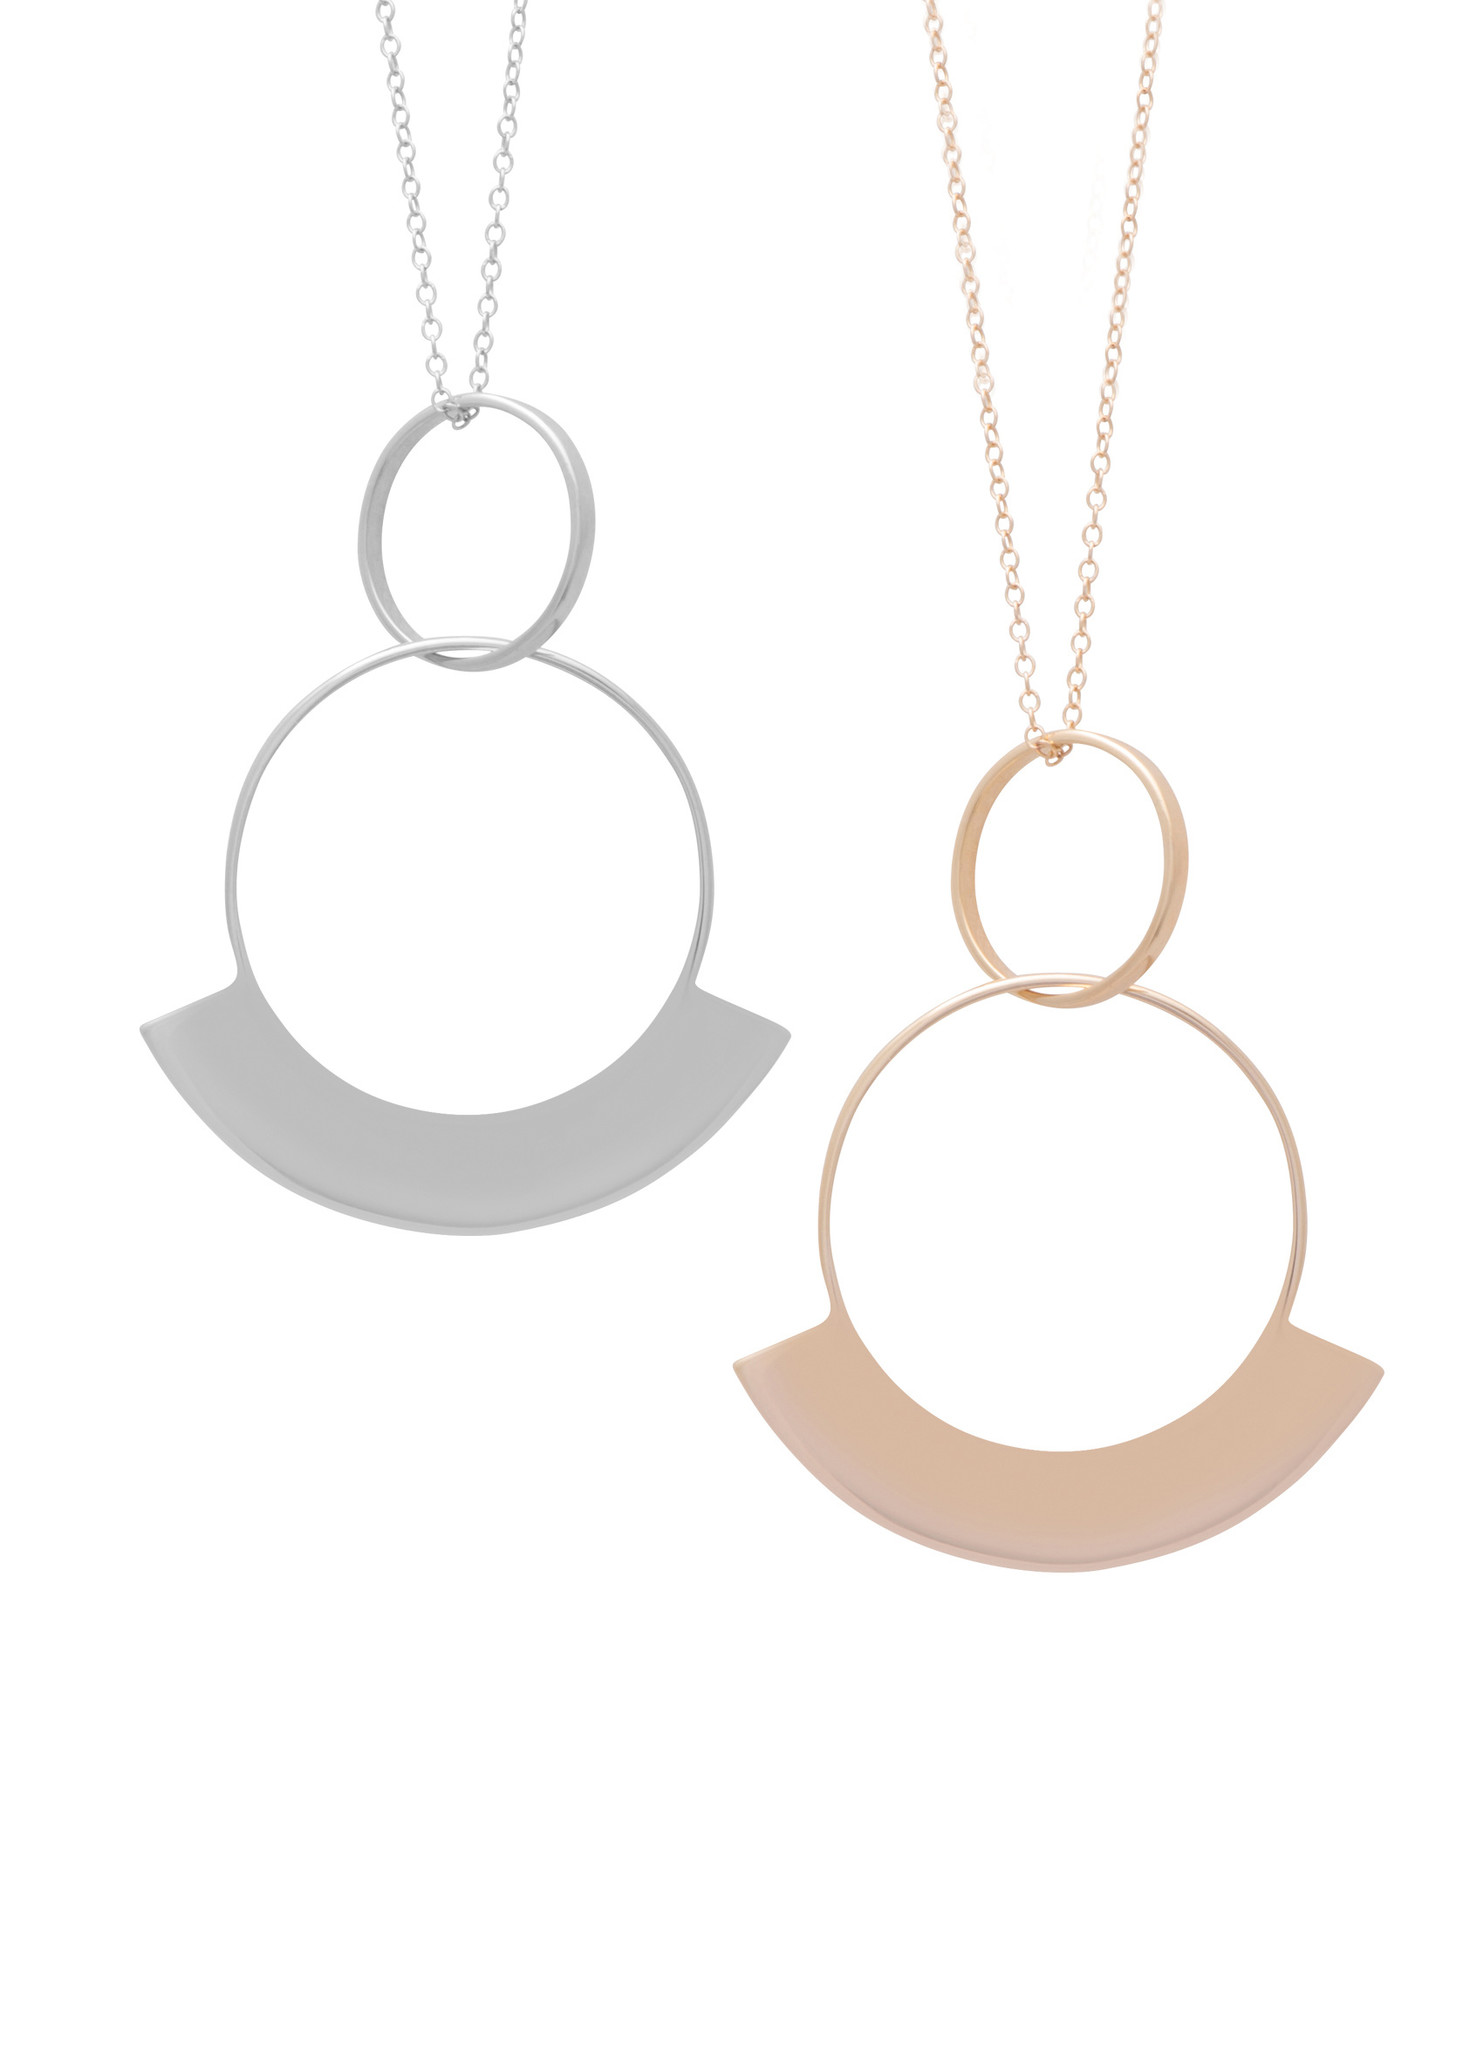 Sarah Mulder Jewelry Reign Necklace